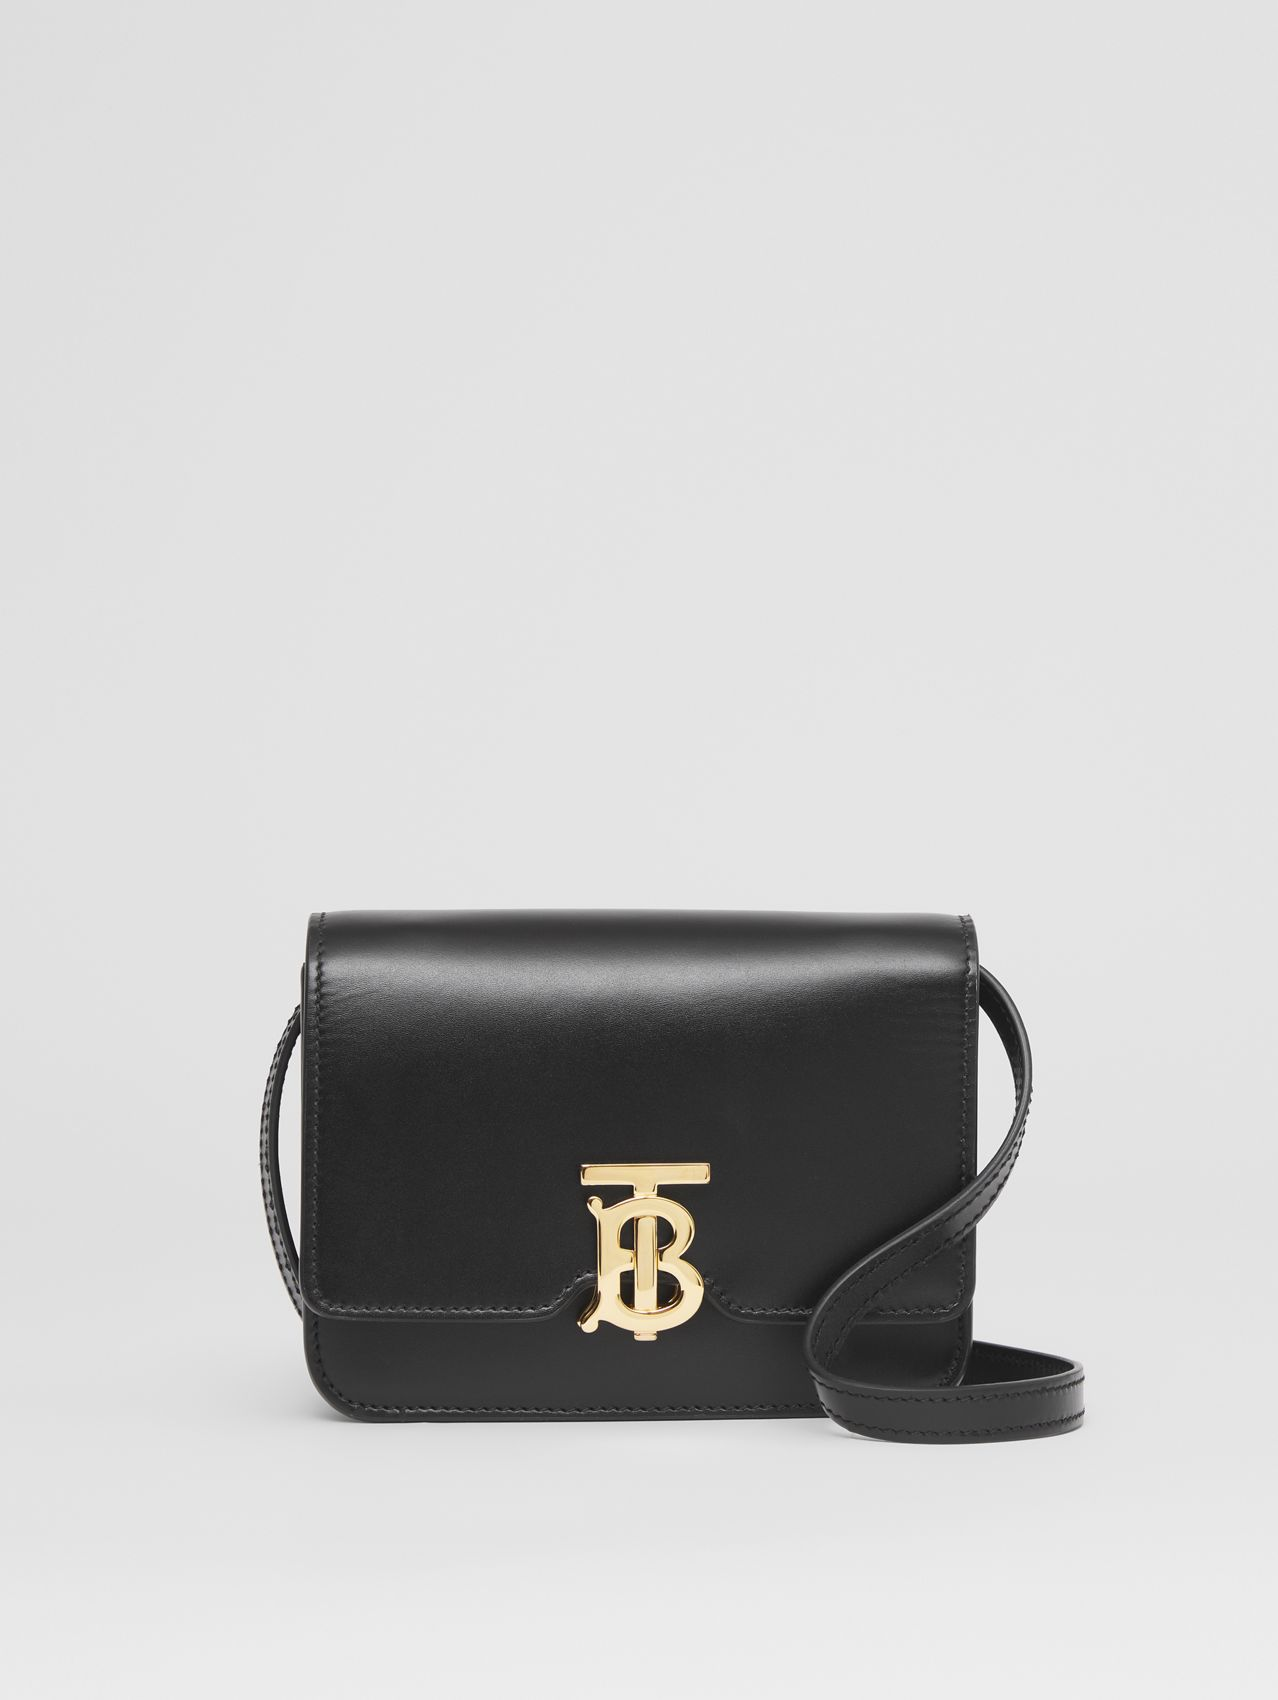 Mini Leather TB Bag in Black